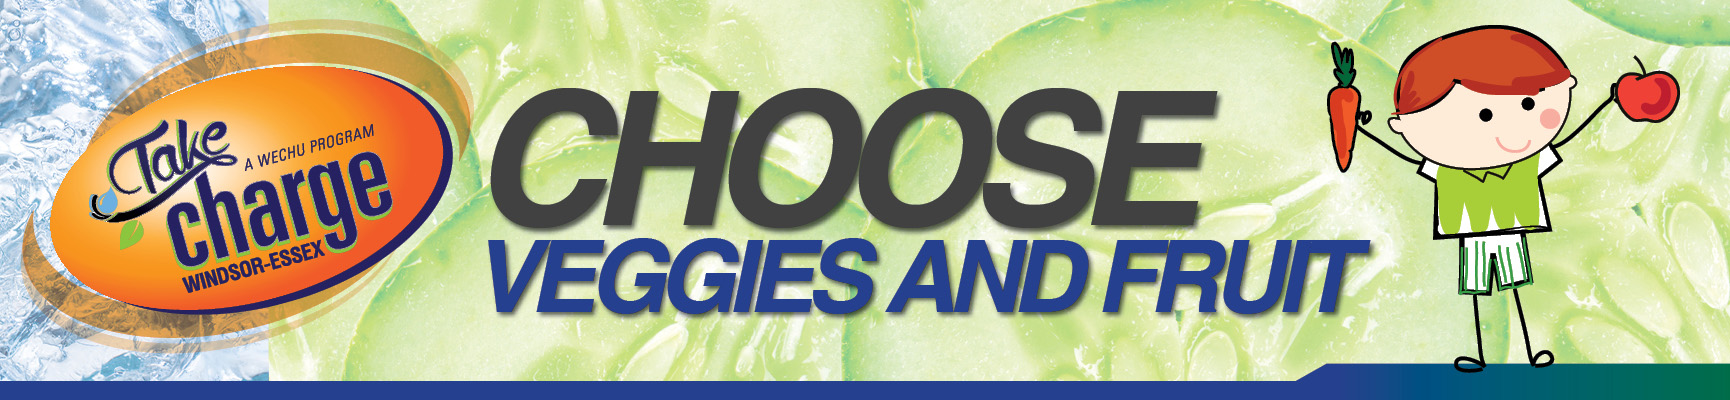 Take Charge - Choose Veggies and fruit banner